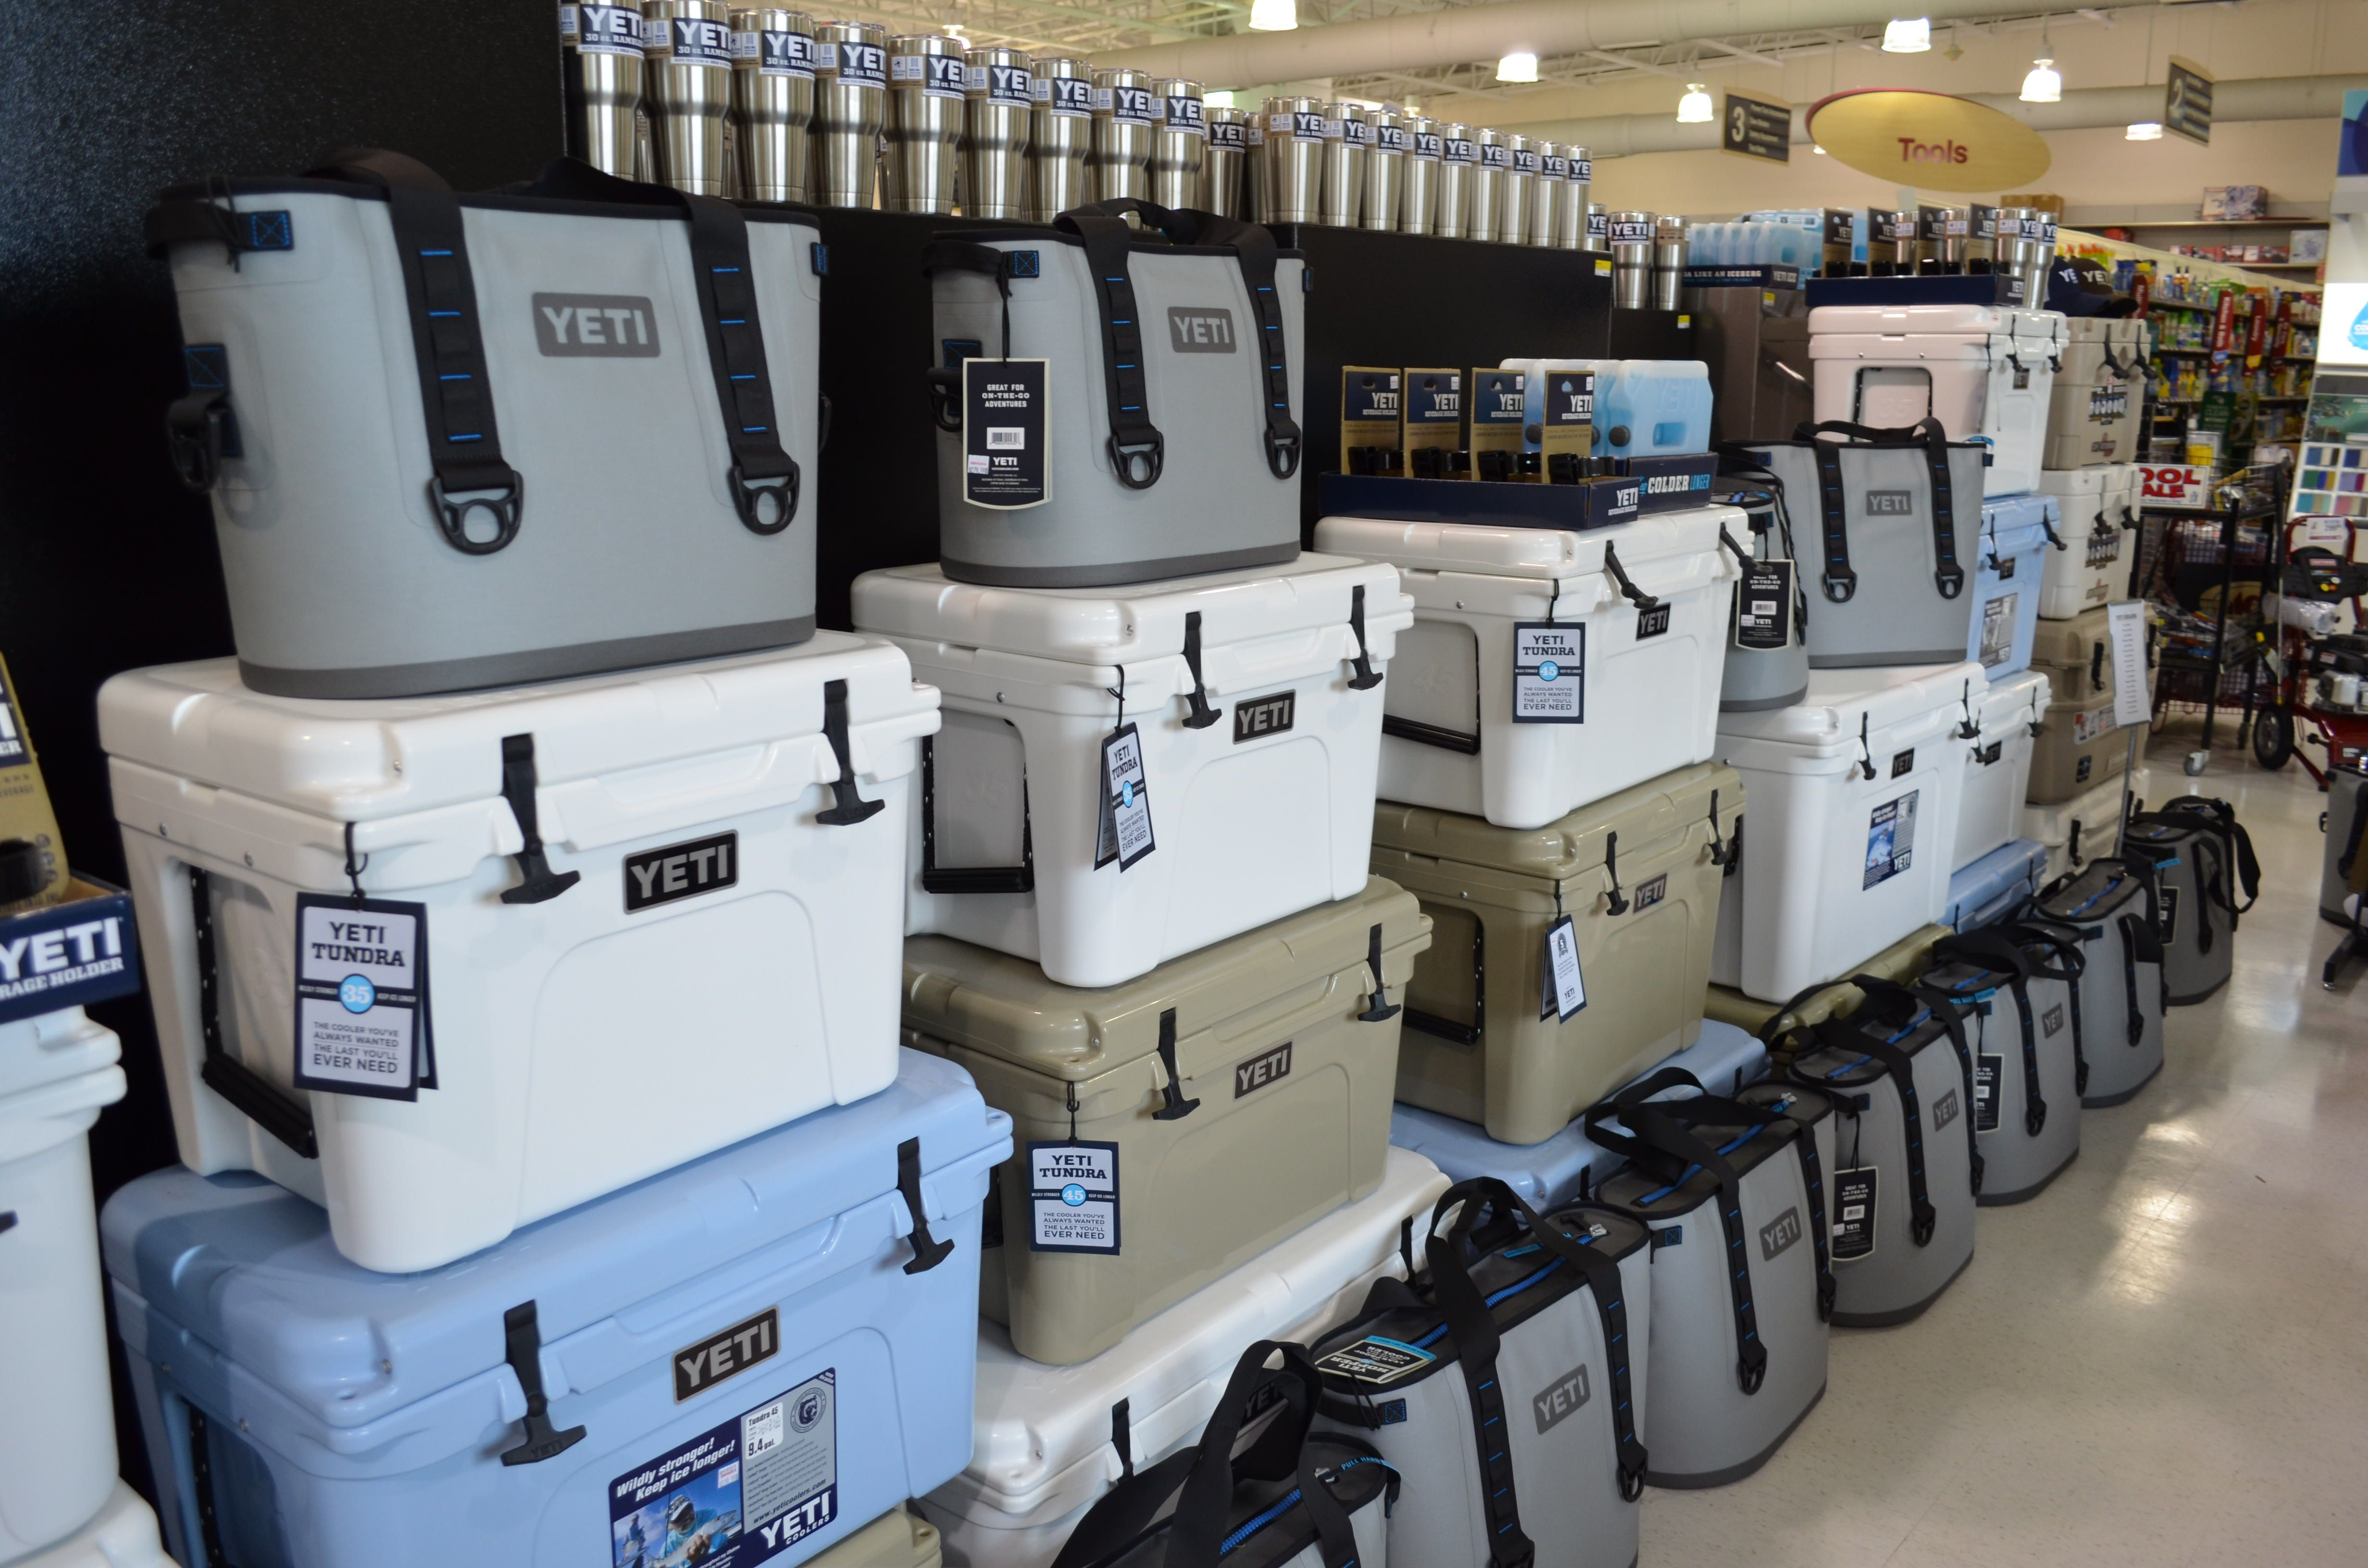 yeti folding chair canvas chairs asda we have the largest selection of coolers around find all your products here like hopper tank tundra roadie rambler colster ice